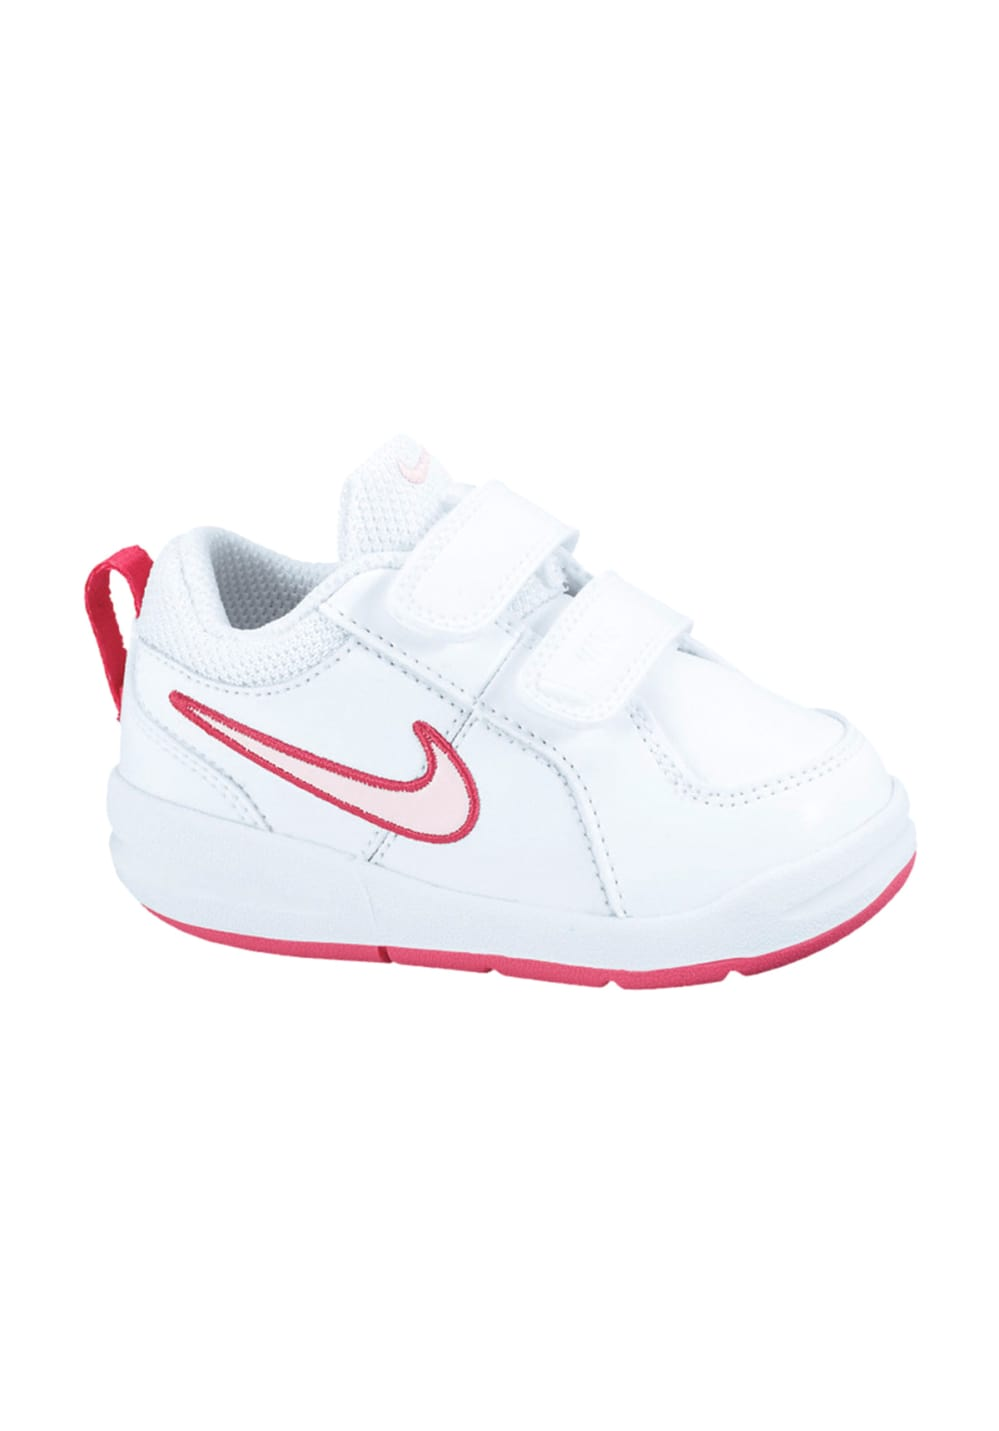 new style 2ab8b b365f Previous. Next. Nike. Pico 4 TDV - Baskets